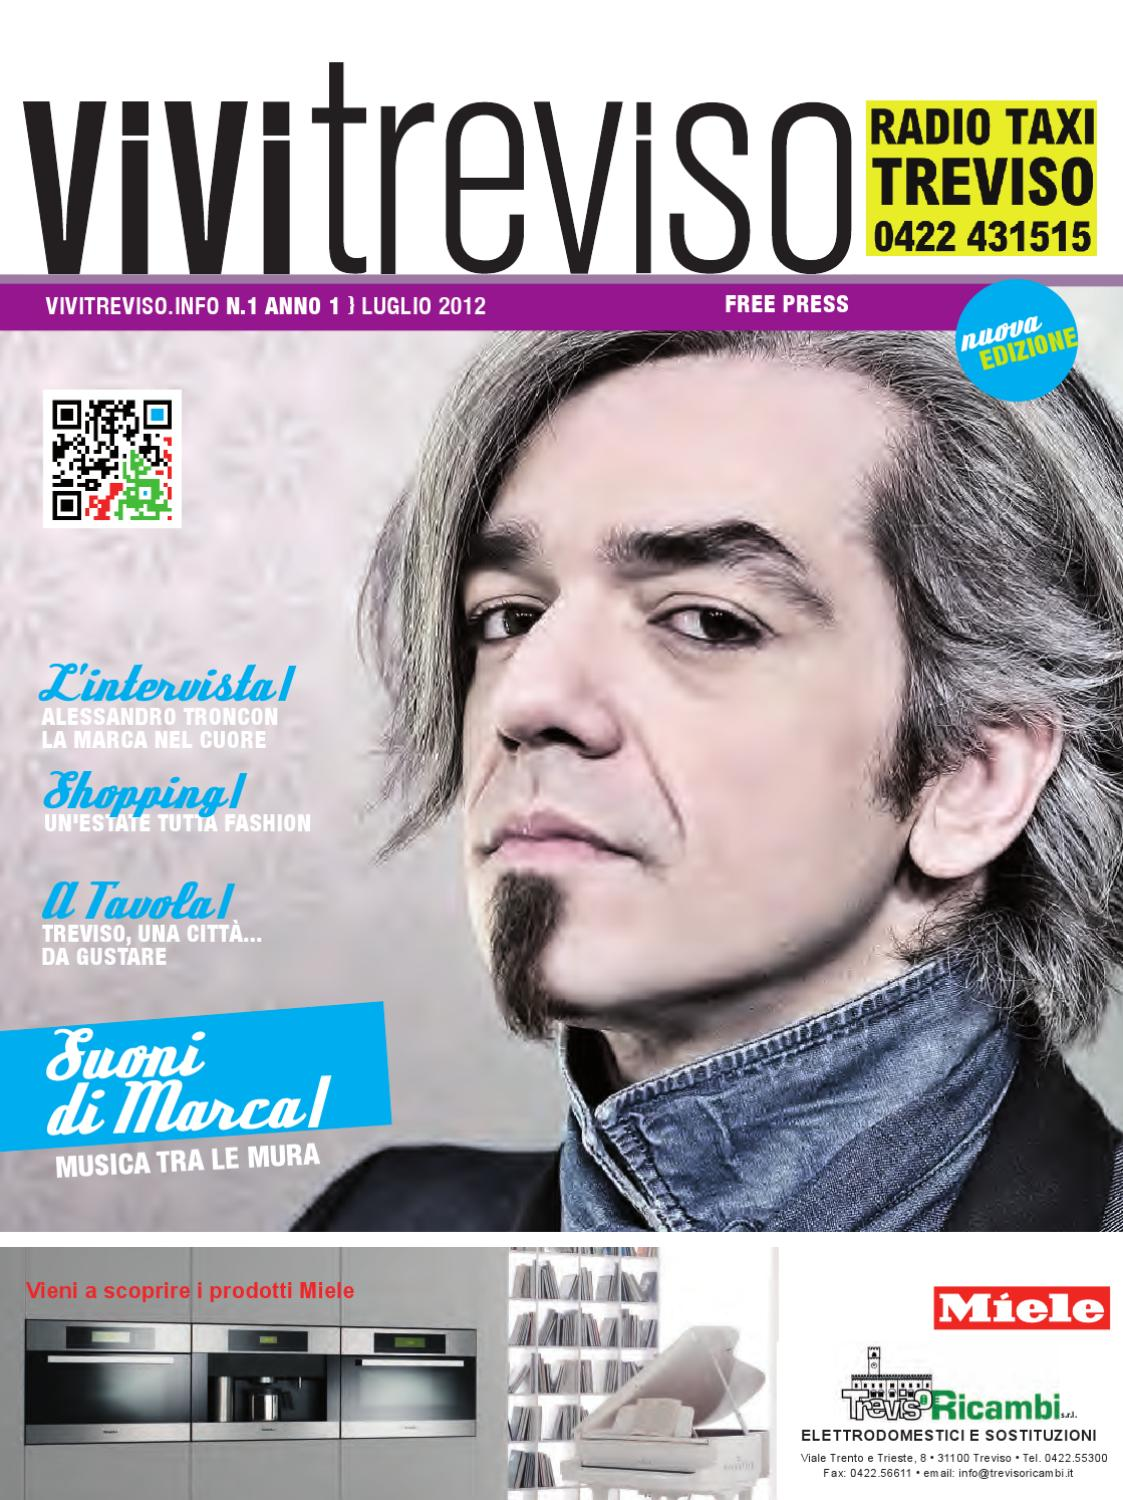 Vivitreviso 02 settembre 2012 by Next Italia - issuu